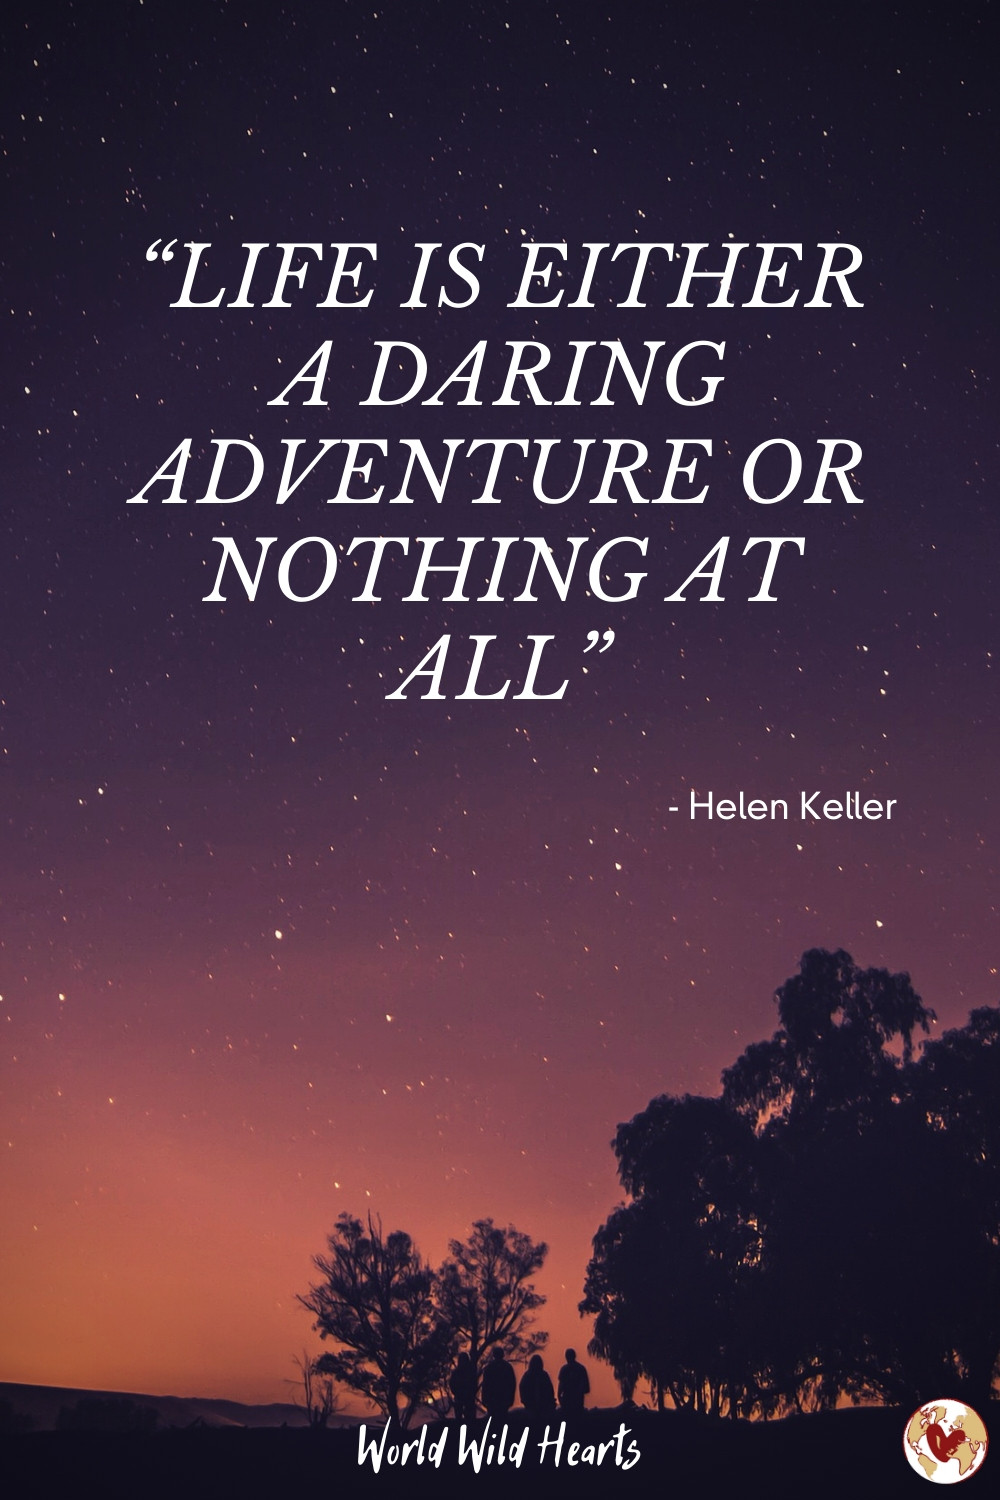 Inspirational travel quote with image